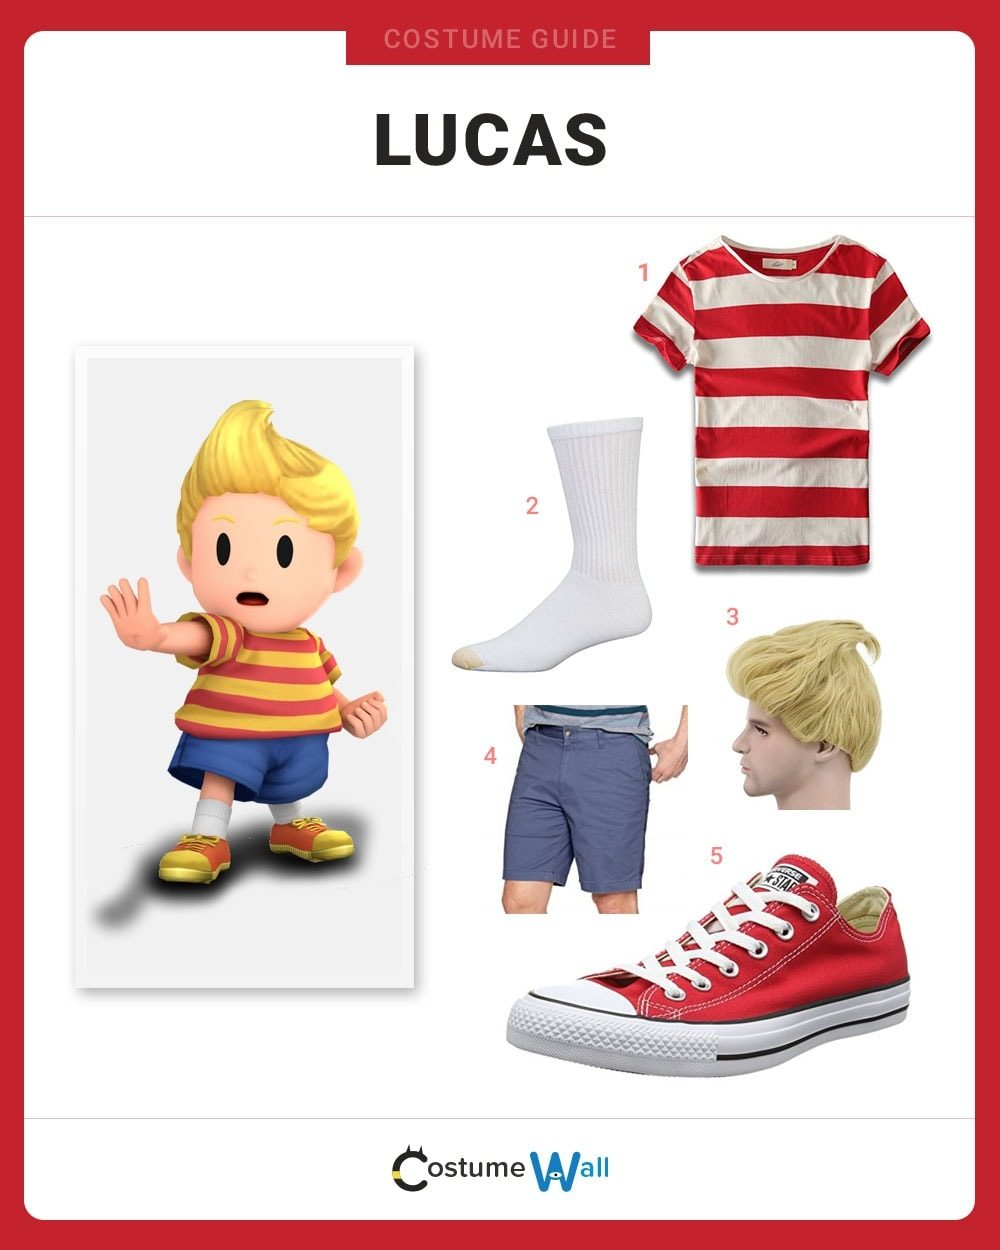 Lucas Costume Guide